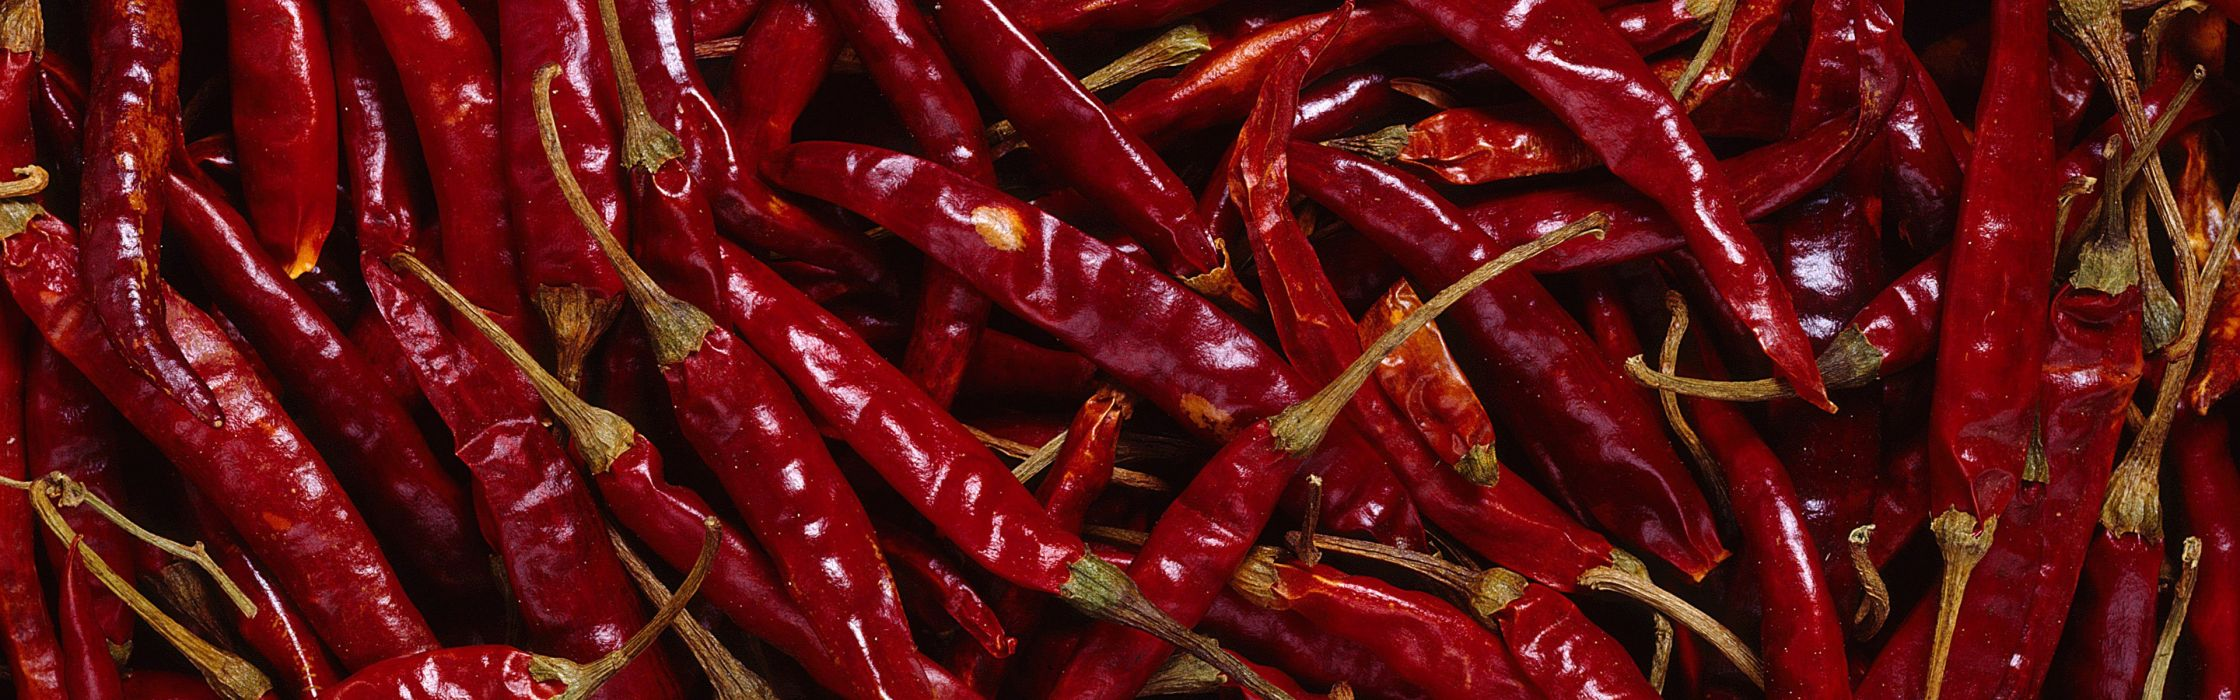 vegetables cayenne chili peppers wallpaper